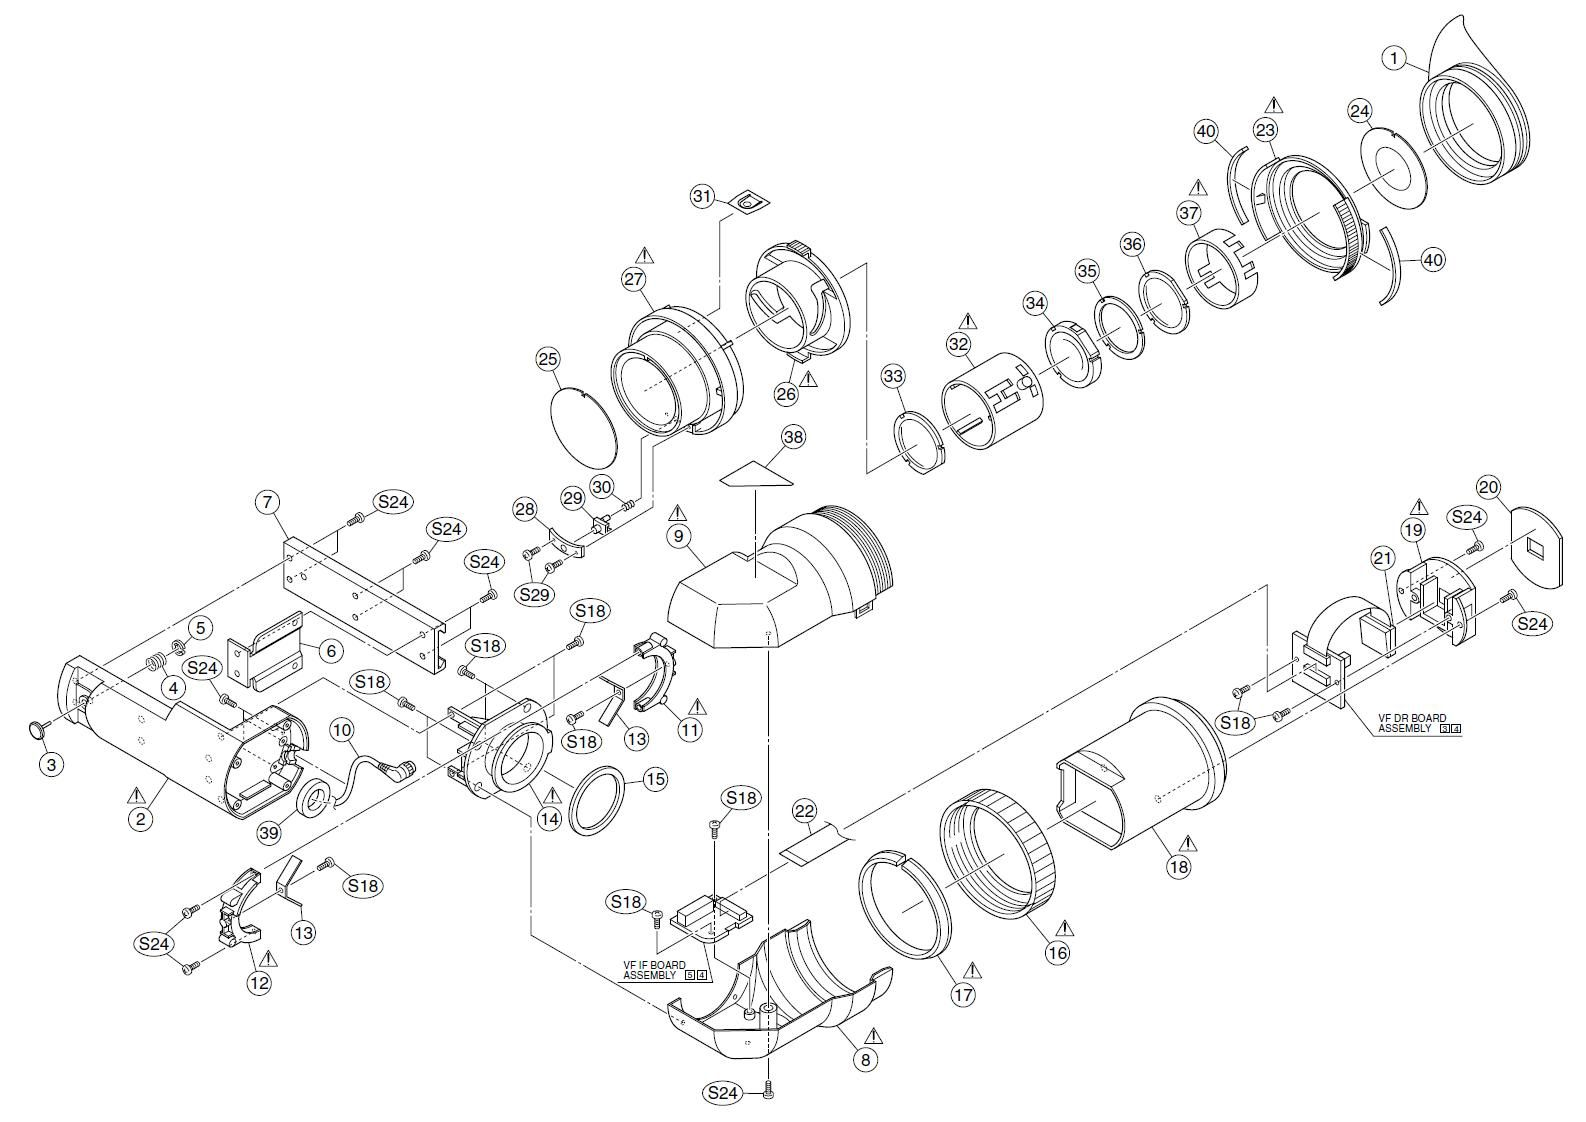 Camcorder Exploded Diagram